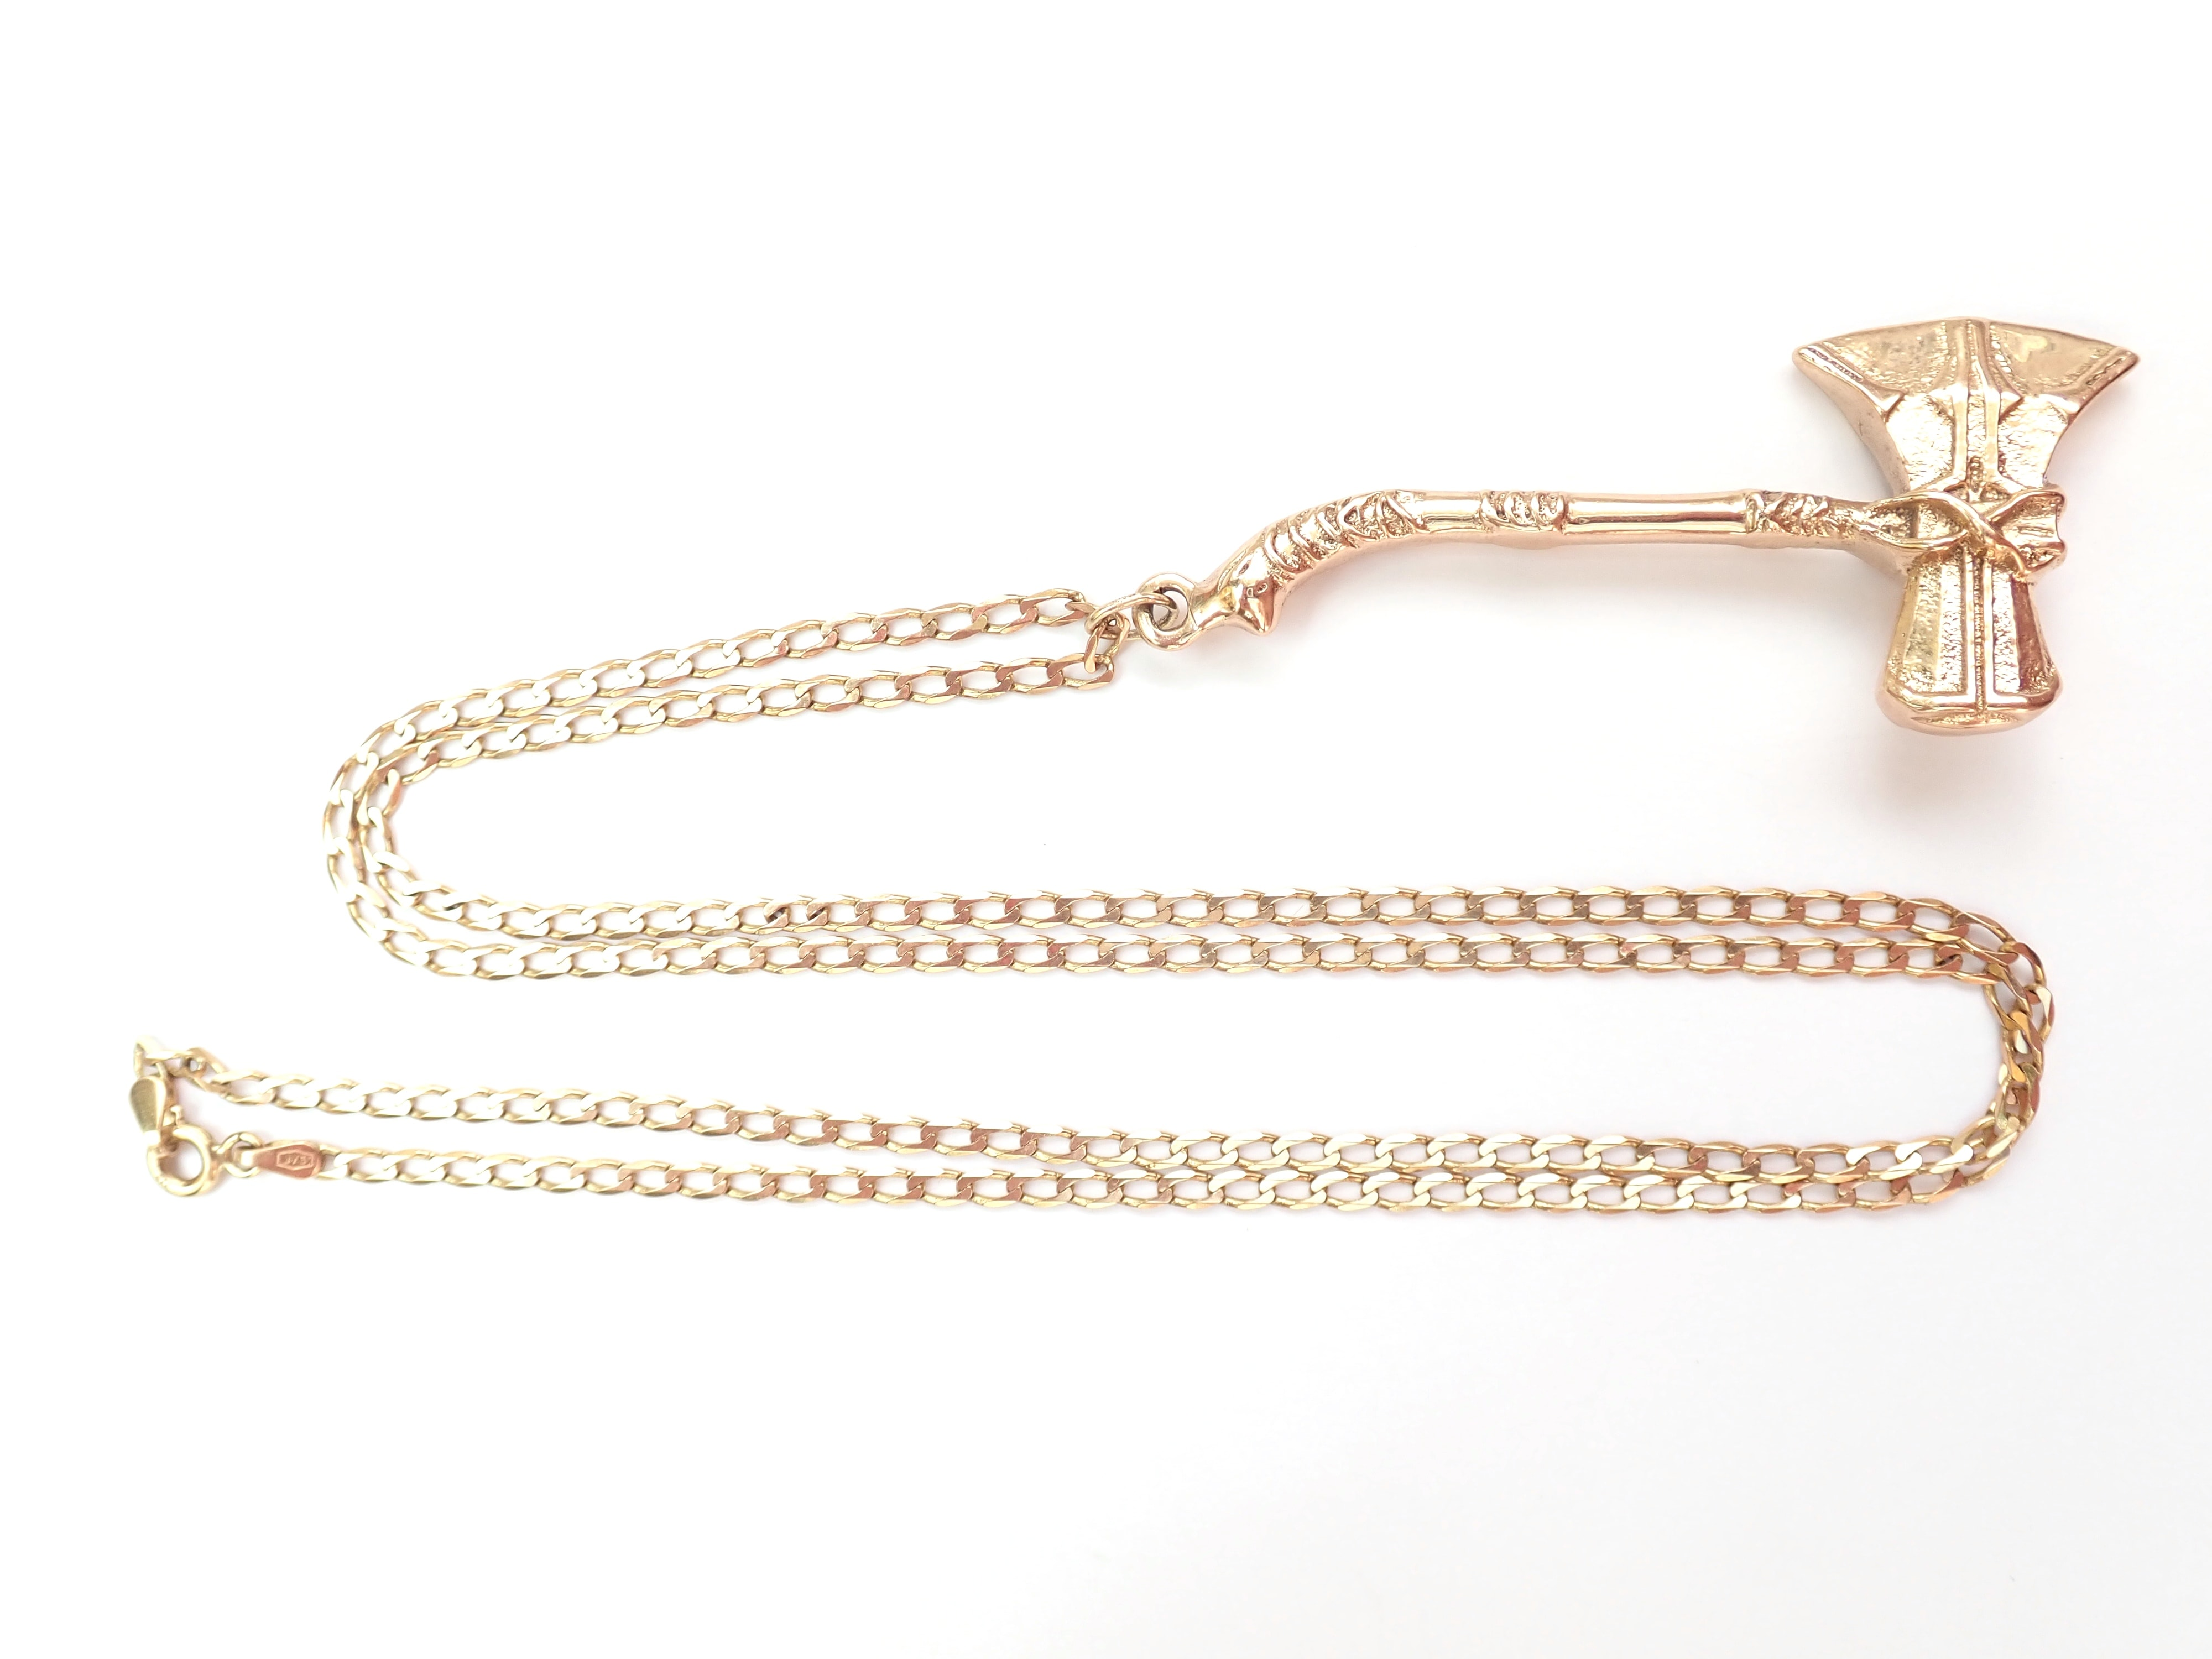 Handmade!! 9ct Gold Viking Axe Pendant with 22″ Curb chain 16.93g